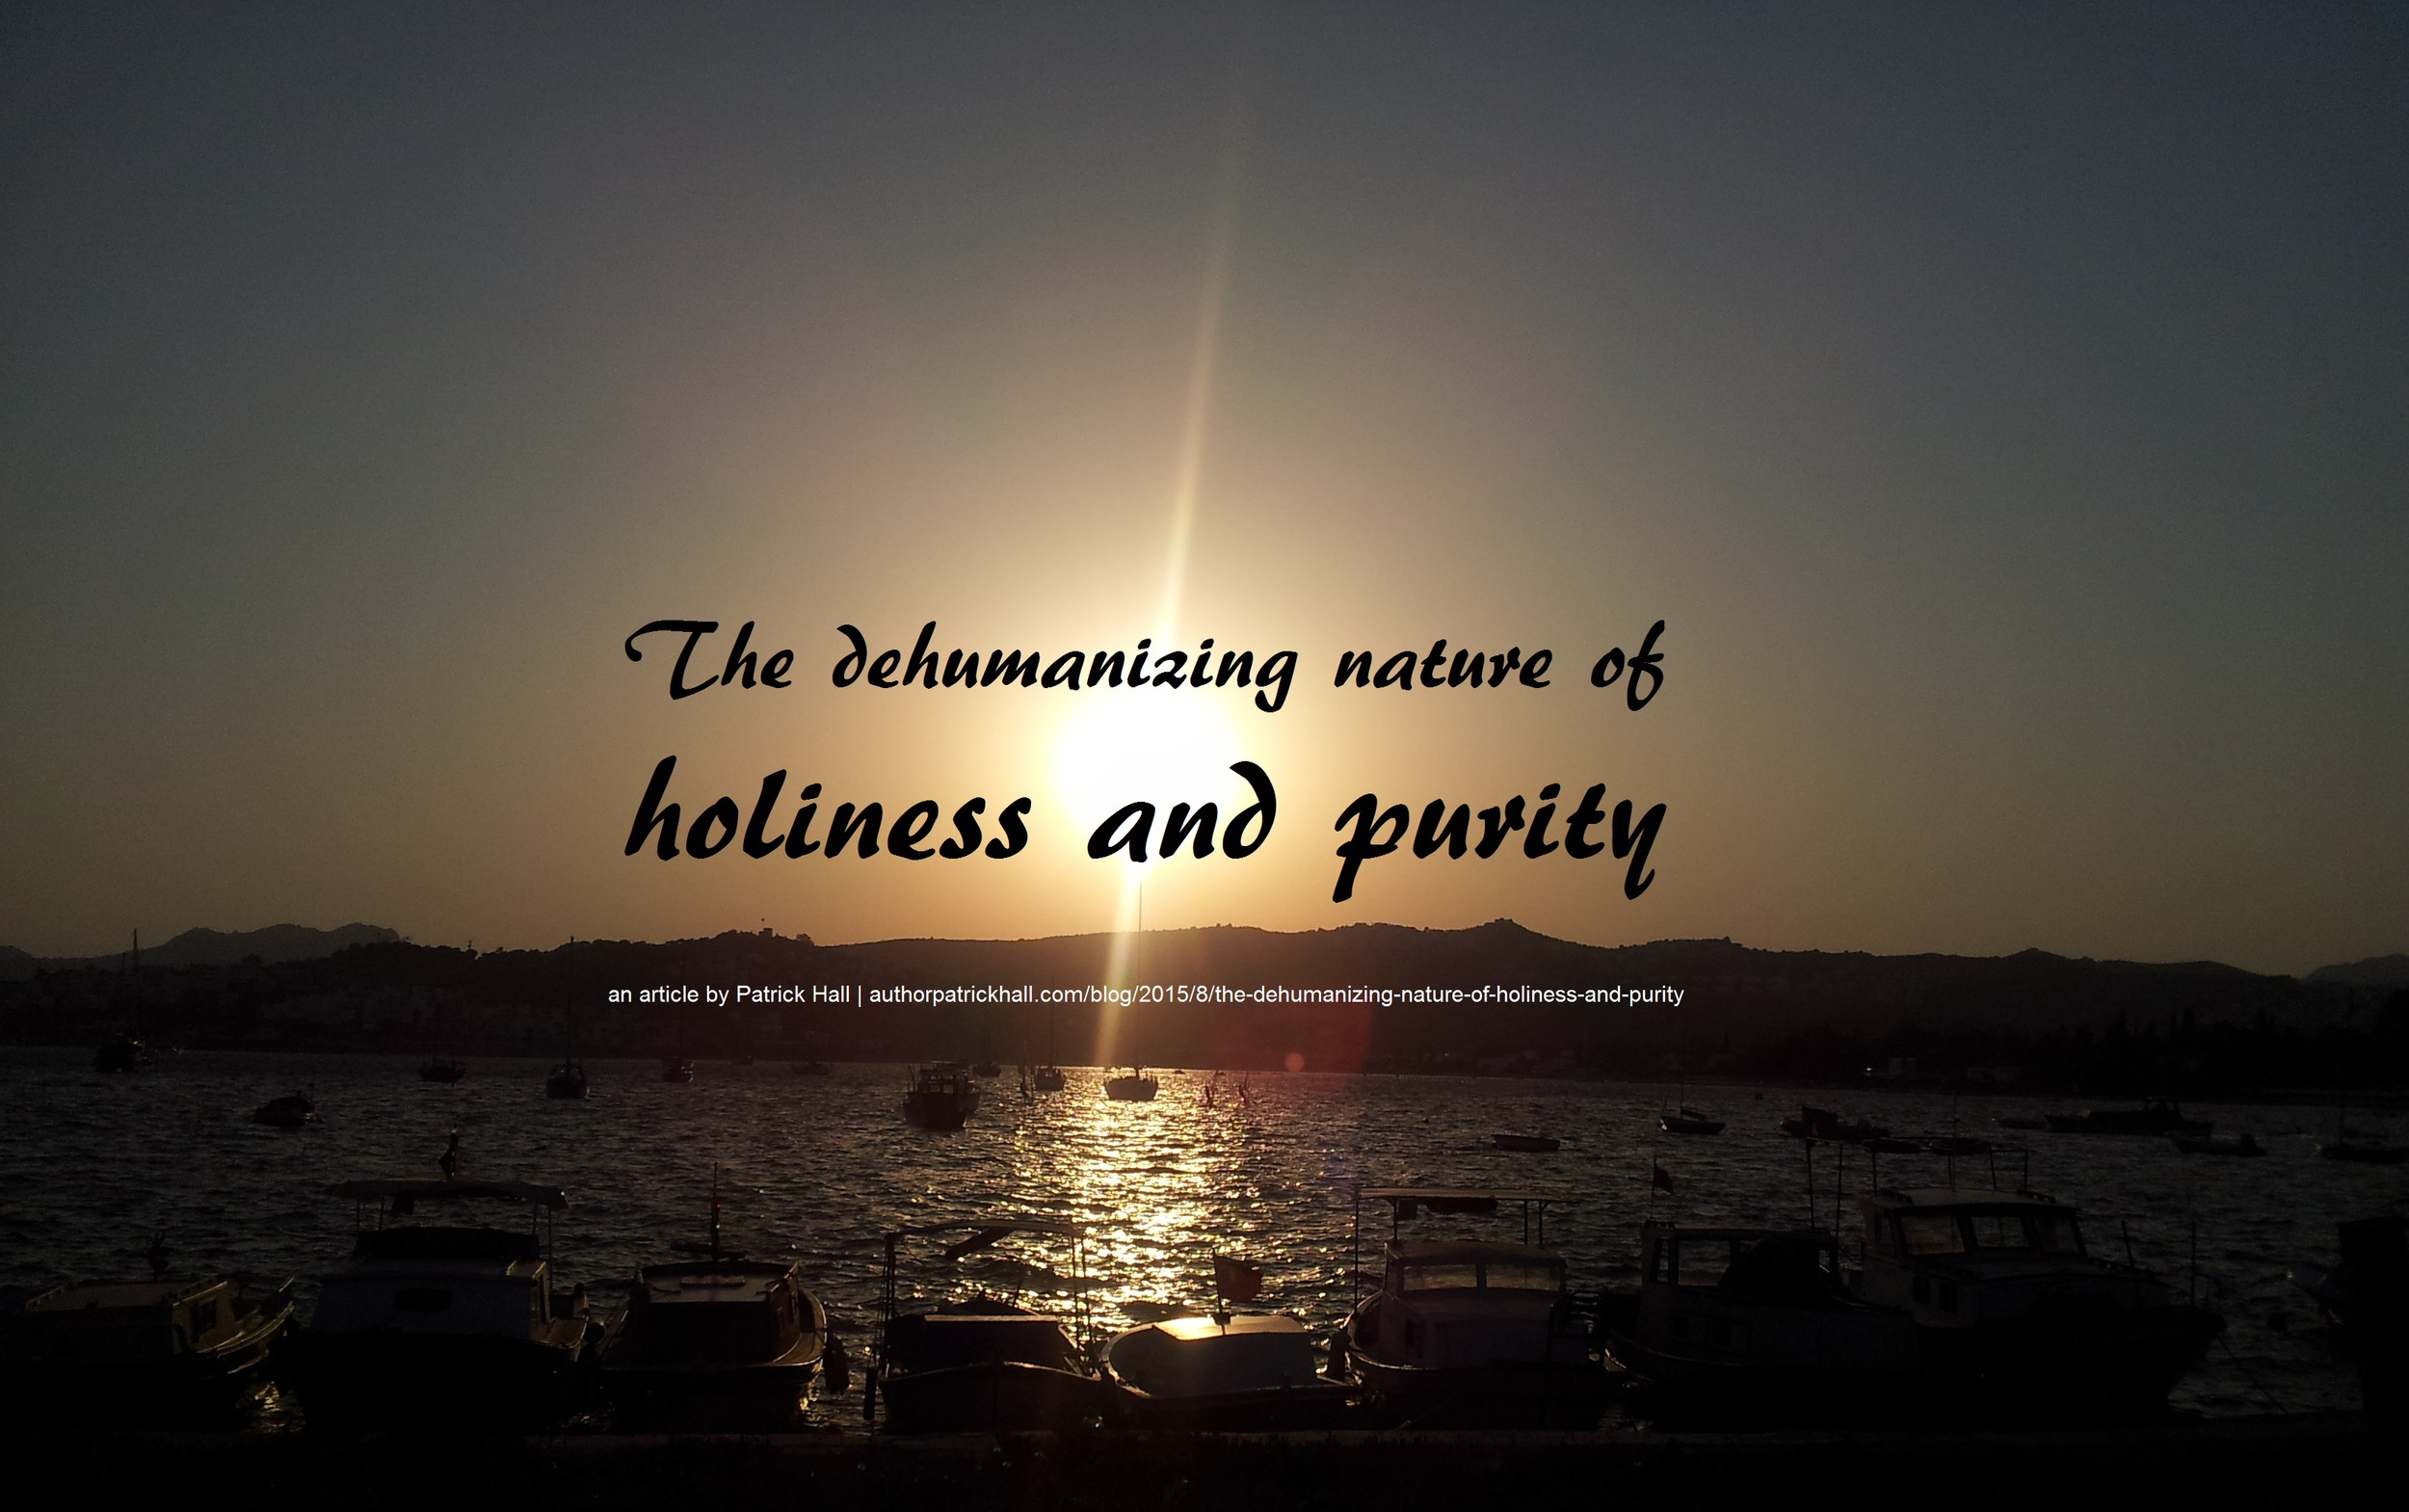 The dehumanizing nature of holiness and purity